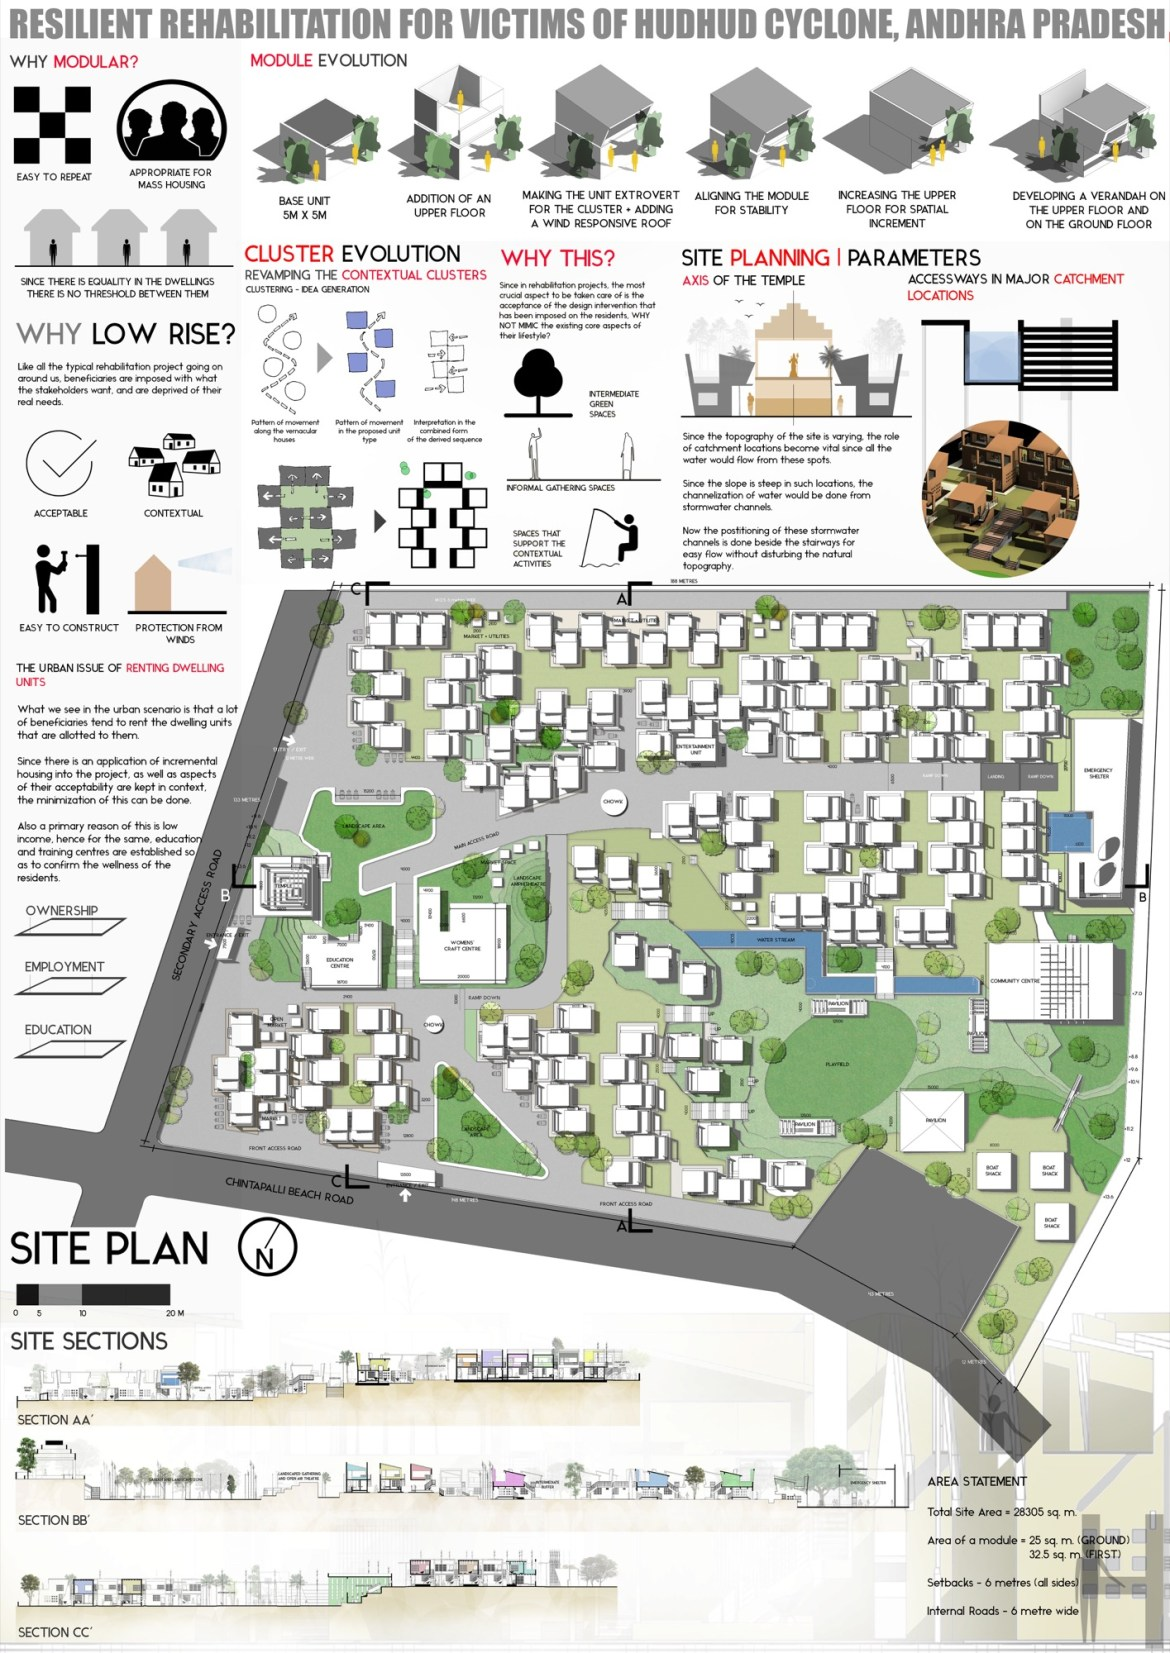 B.Arch Thesis: RESILIENT REHABILITATION FOR VICTIMS OF HUDHUD CYCLONE, ANDHRA PRADESH, by Sanand Telang 5